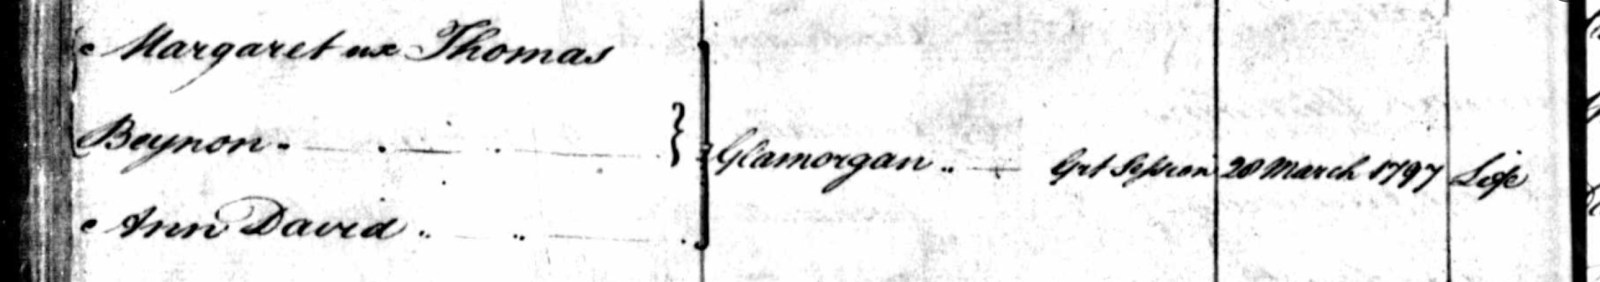 Register of Arms in NSW, 1802 | Random Genealogy on